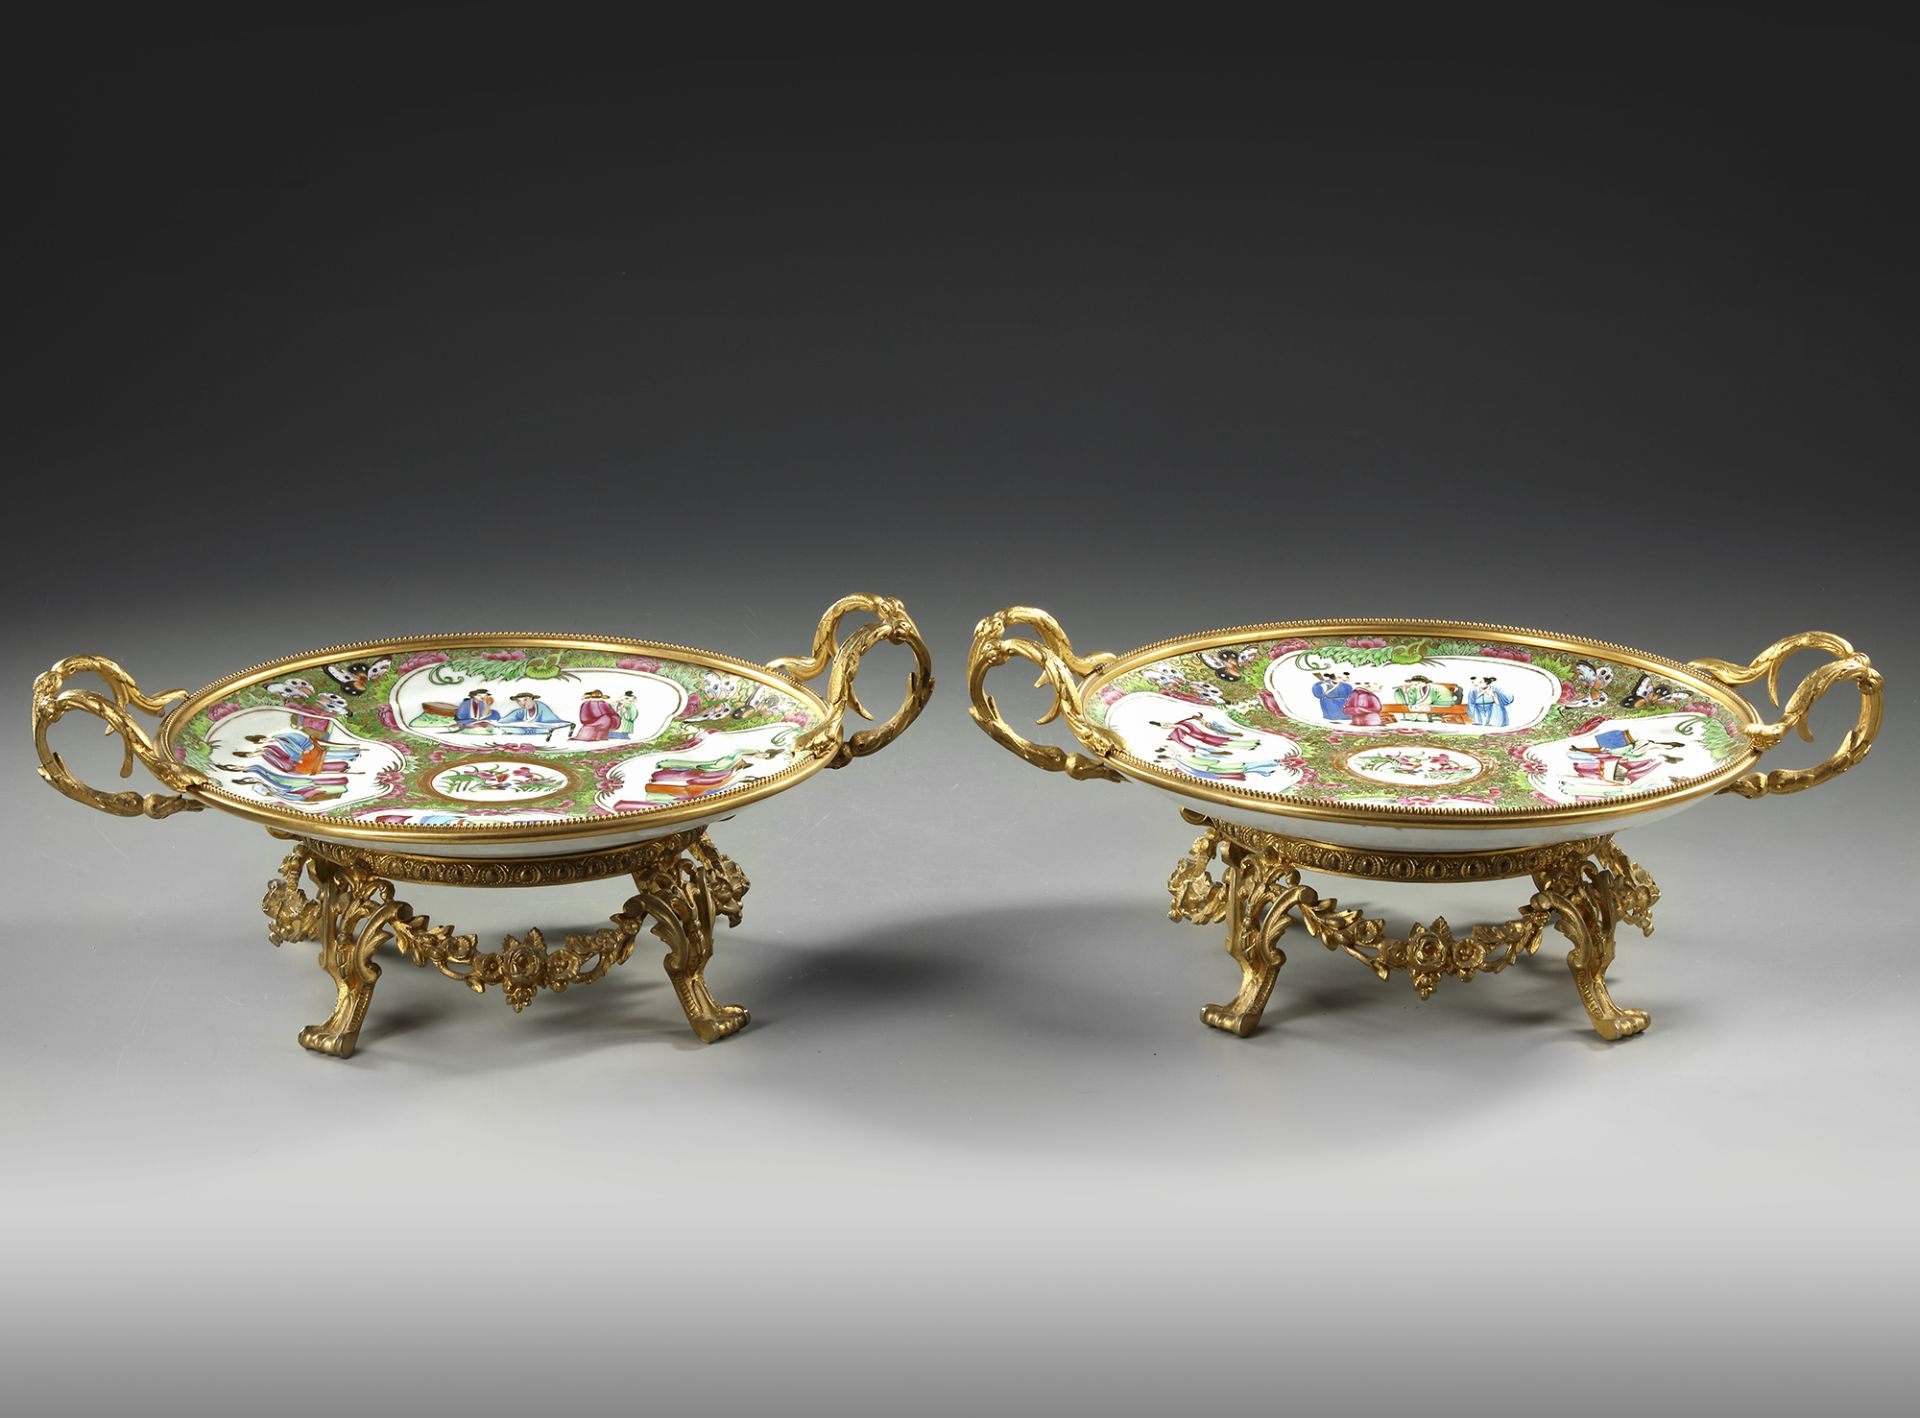 A PAIR OF CANTONESE PLATES, 20TH CENTURY